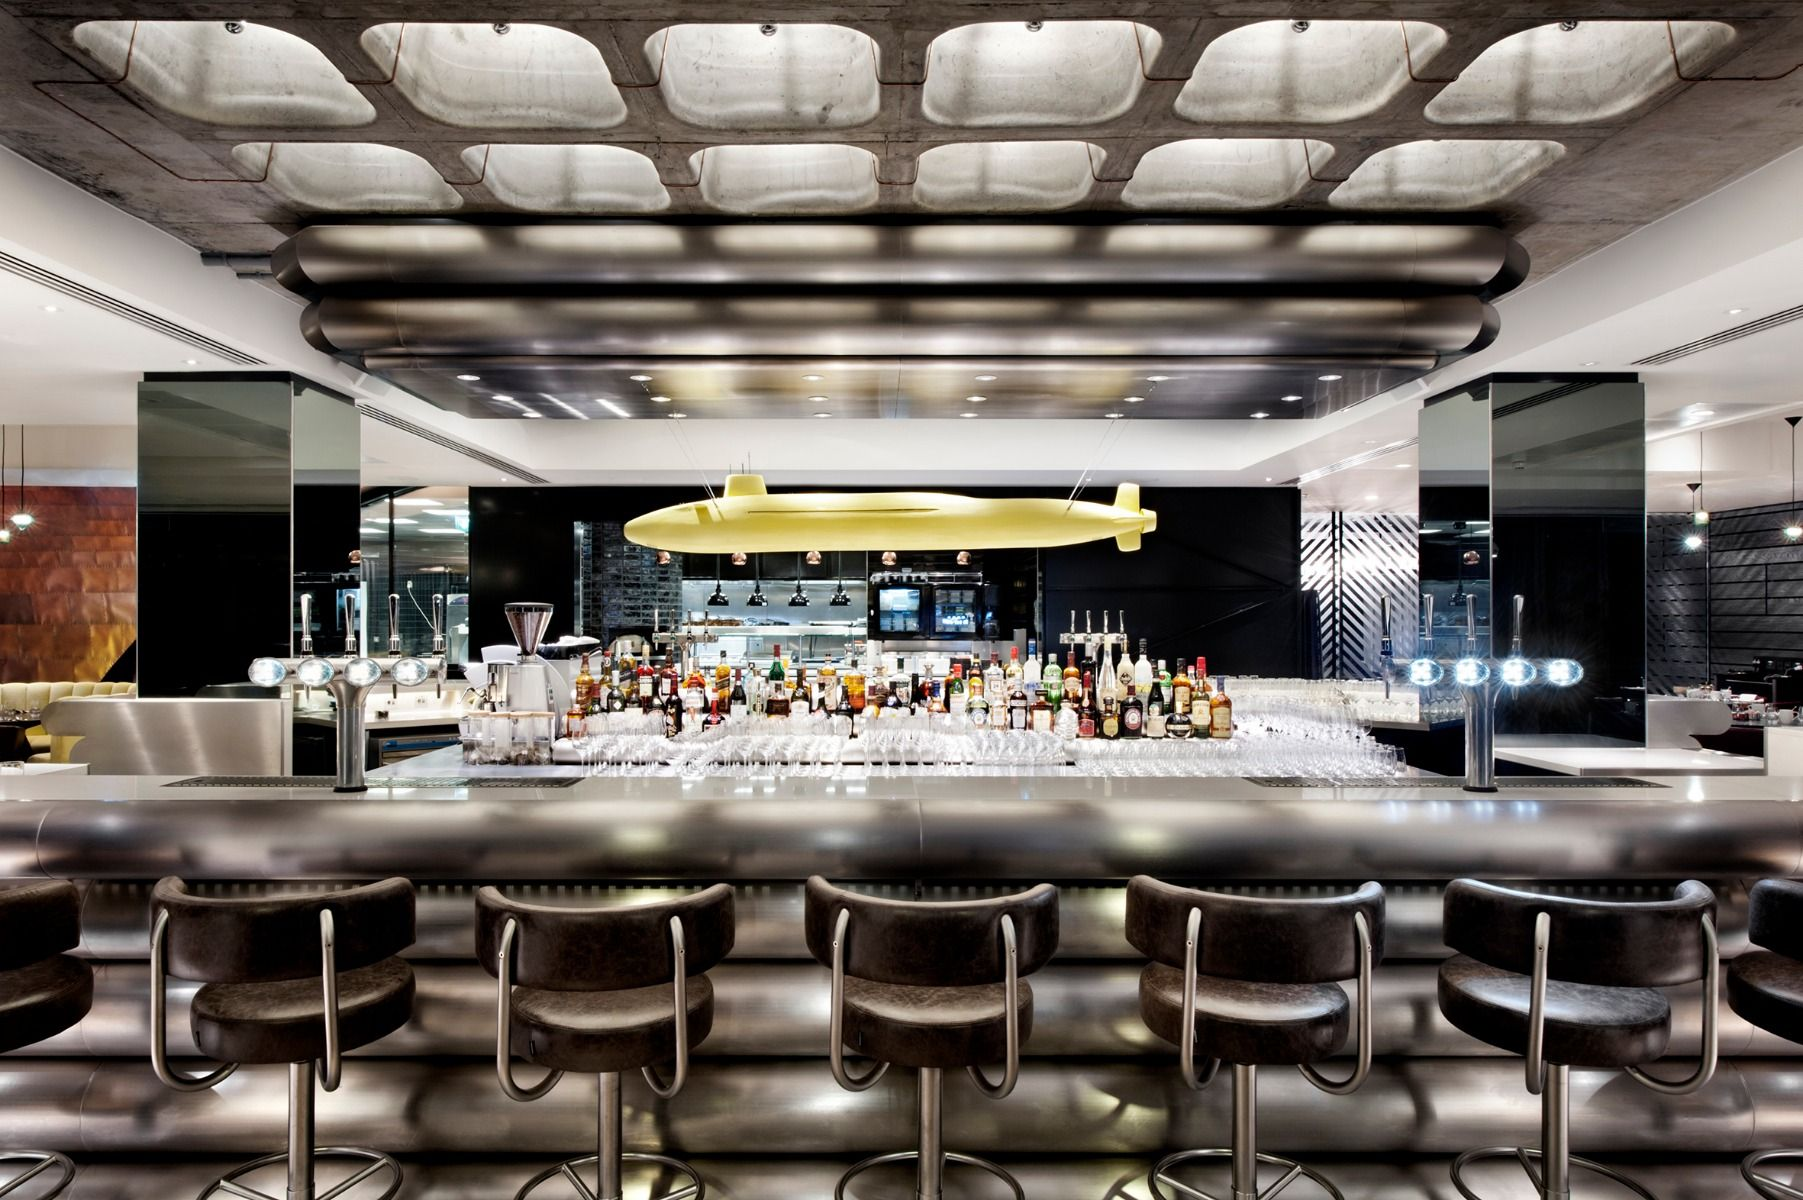 Mondrian Hotel In London, Interiors By Tom Dixons Design Research